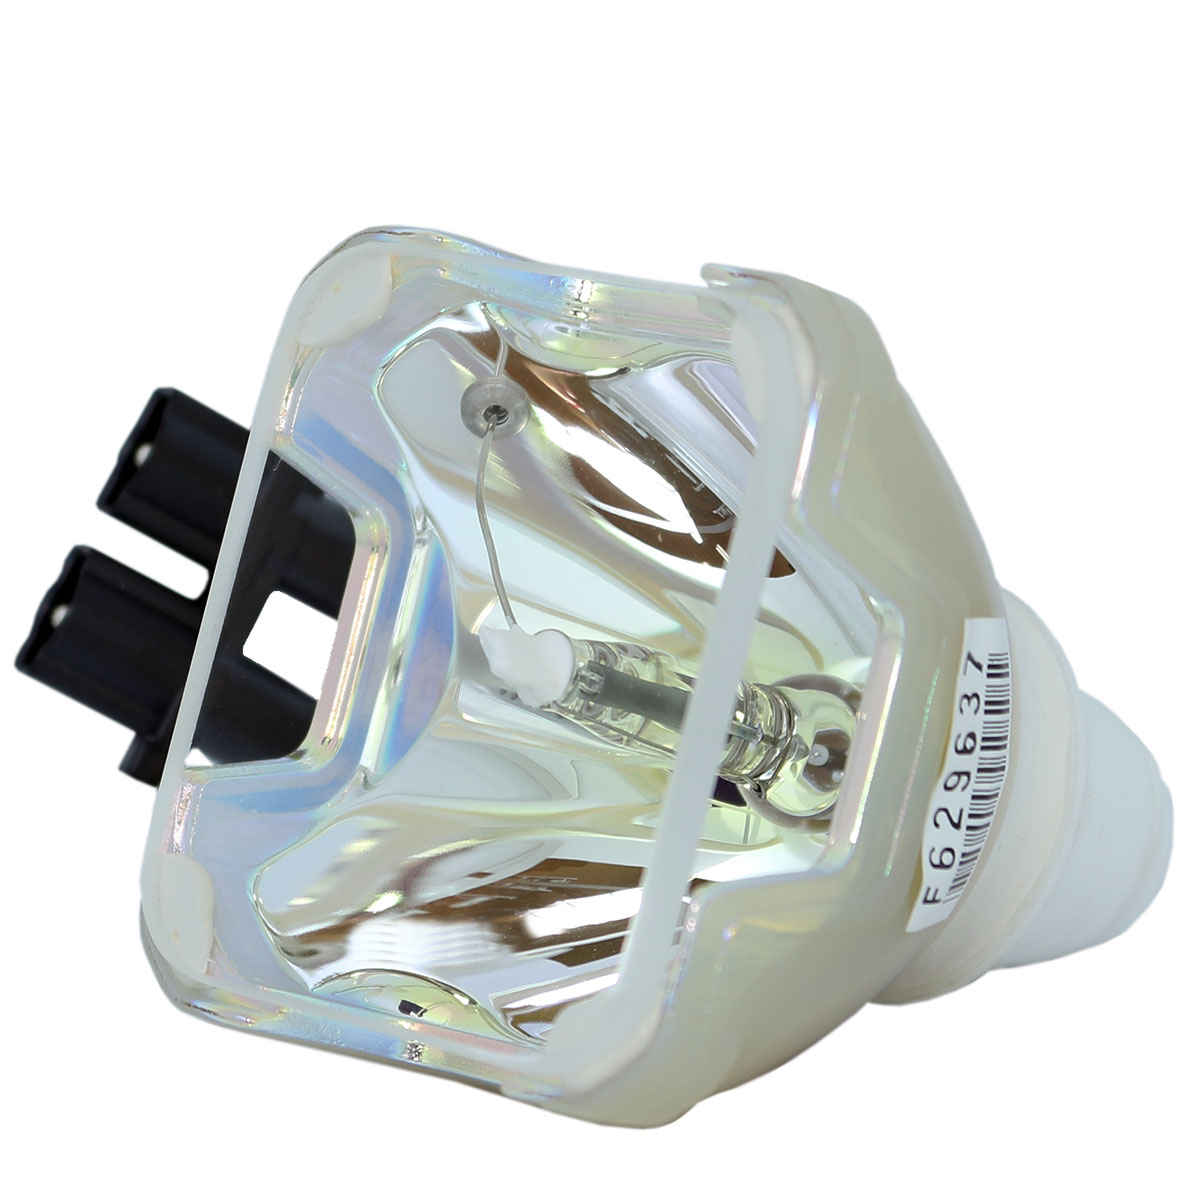 Compatible Bare Bulb LV-LP21 9923A001 for Canon LV-X4 / LV-X4E Projector Lamp Bulb without housing compatible bare bulb lv lp29 2542b001aa for canon lv 7585 lv 7590 projector lamp bulb without housing